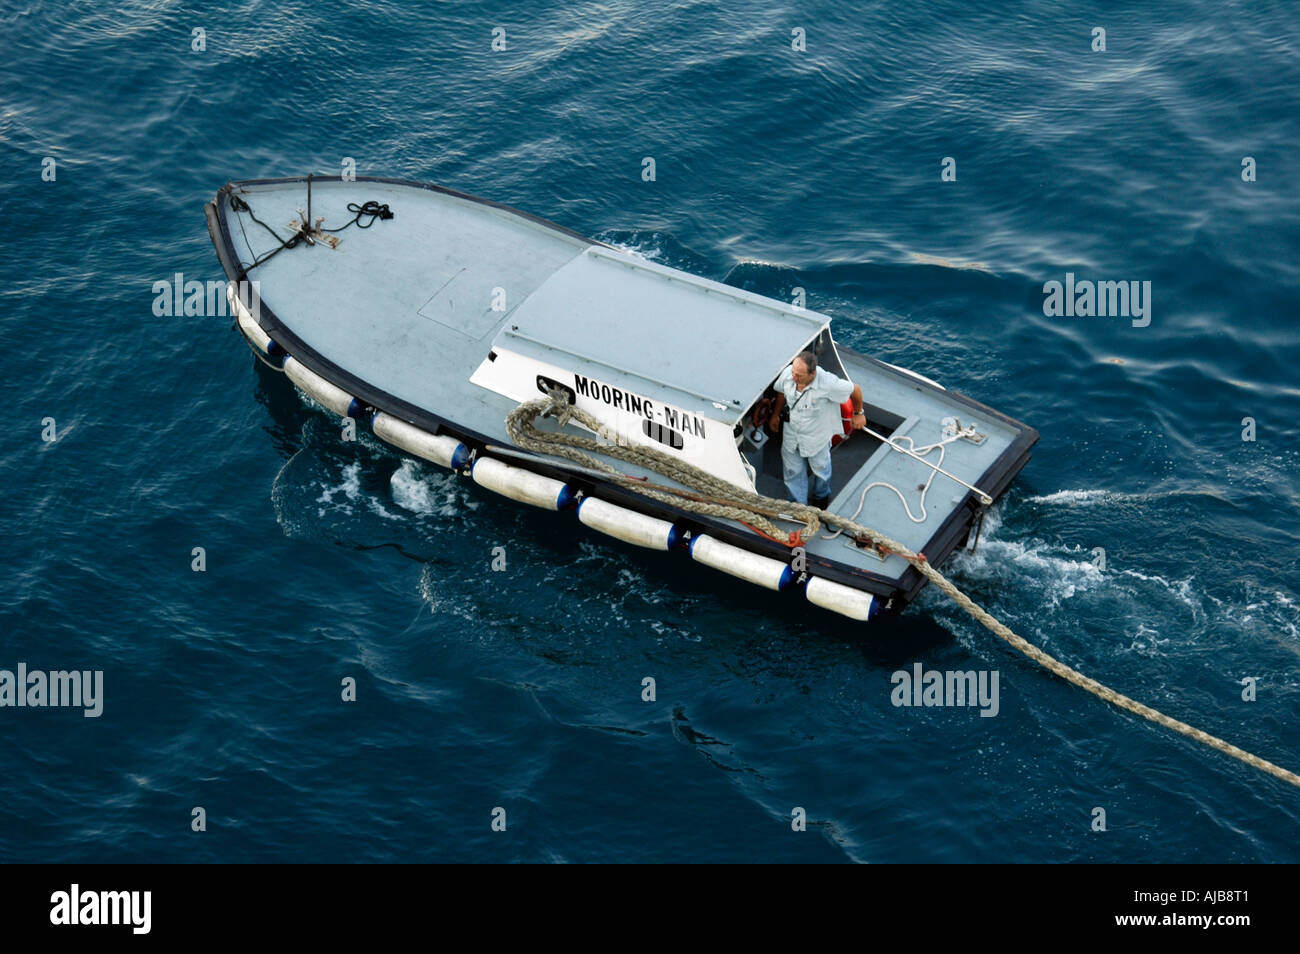 The mooring man boat takes he ropes from the docking vessel to be tied to the wharf port of Messina Sicily Italy Stock Photo